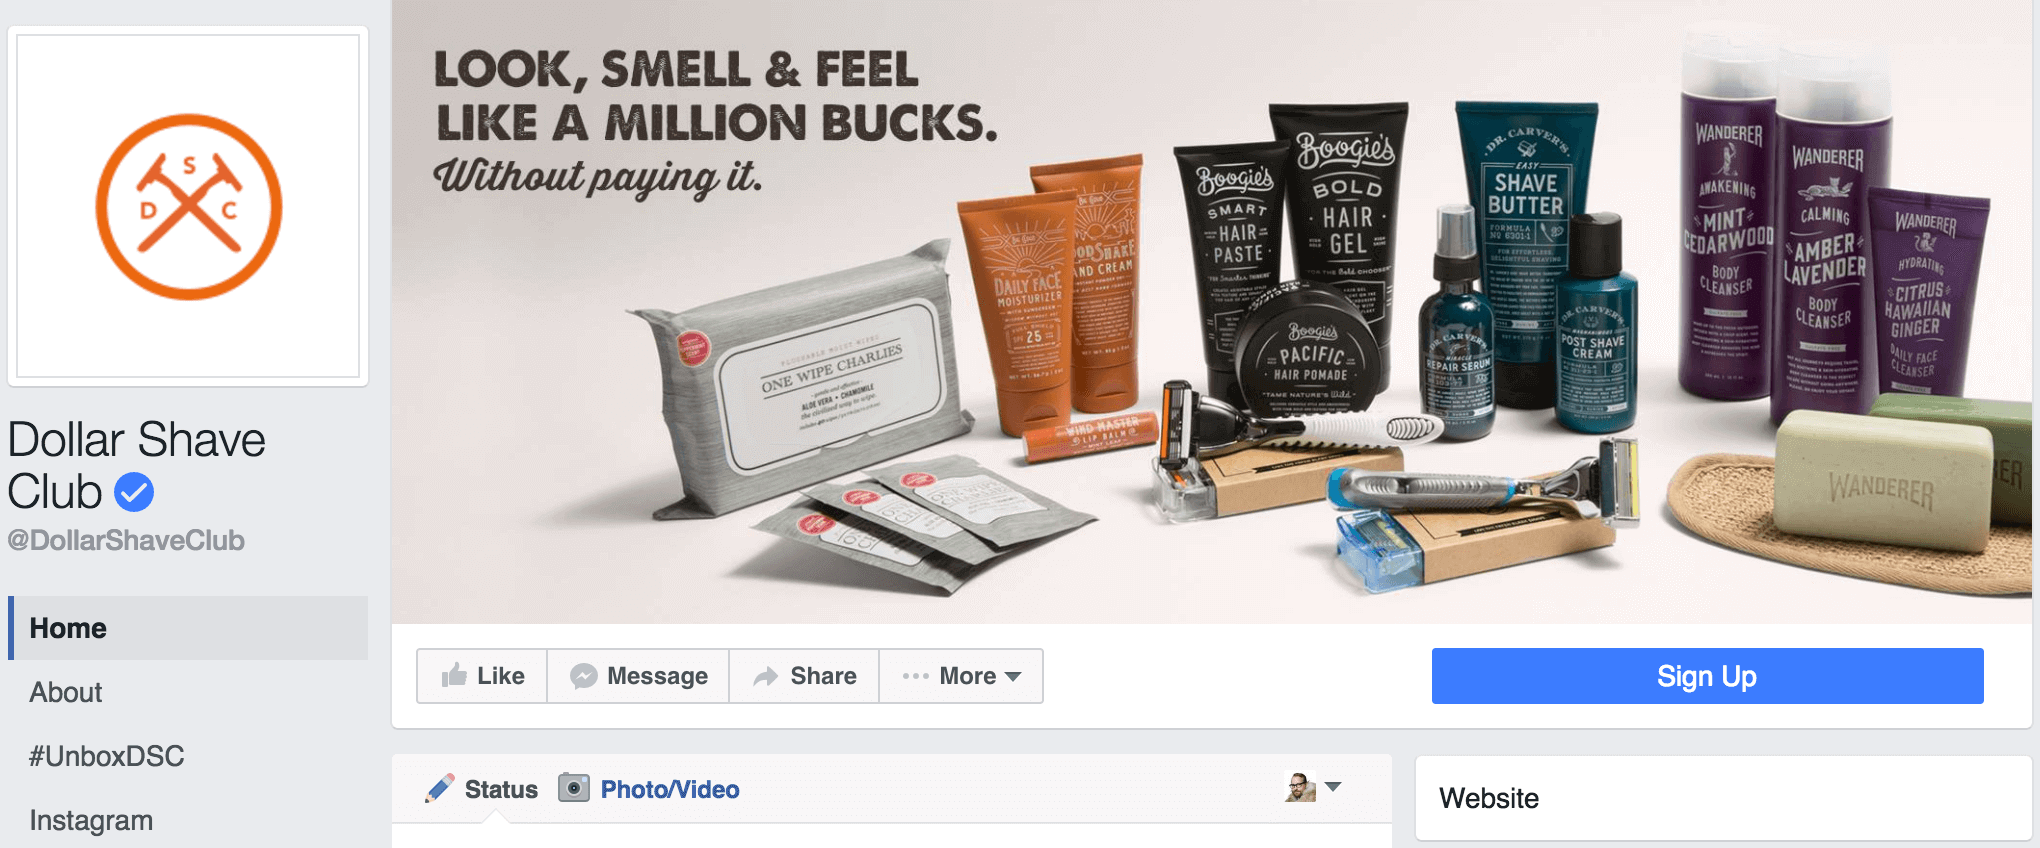 Dollar Shave Club on Facebook